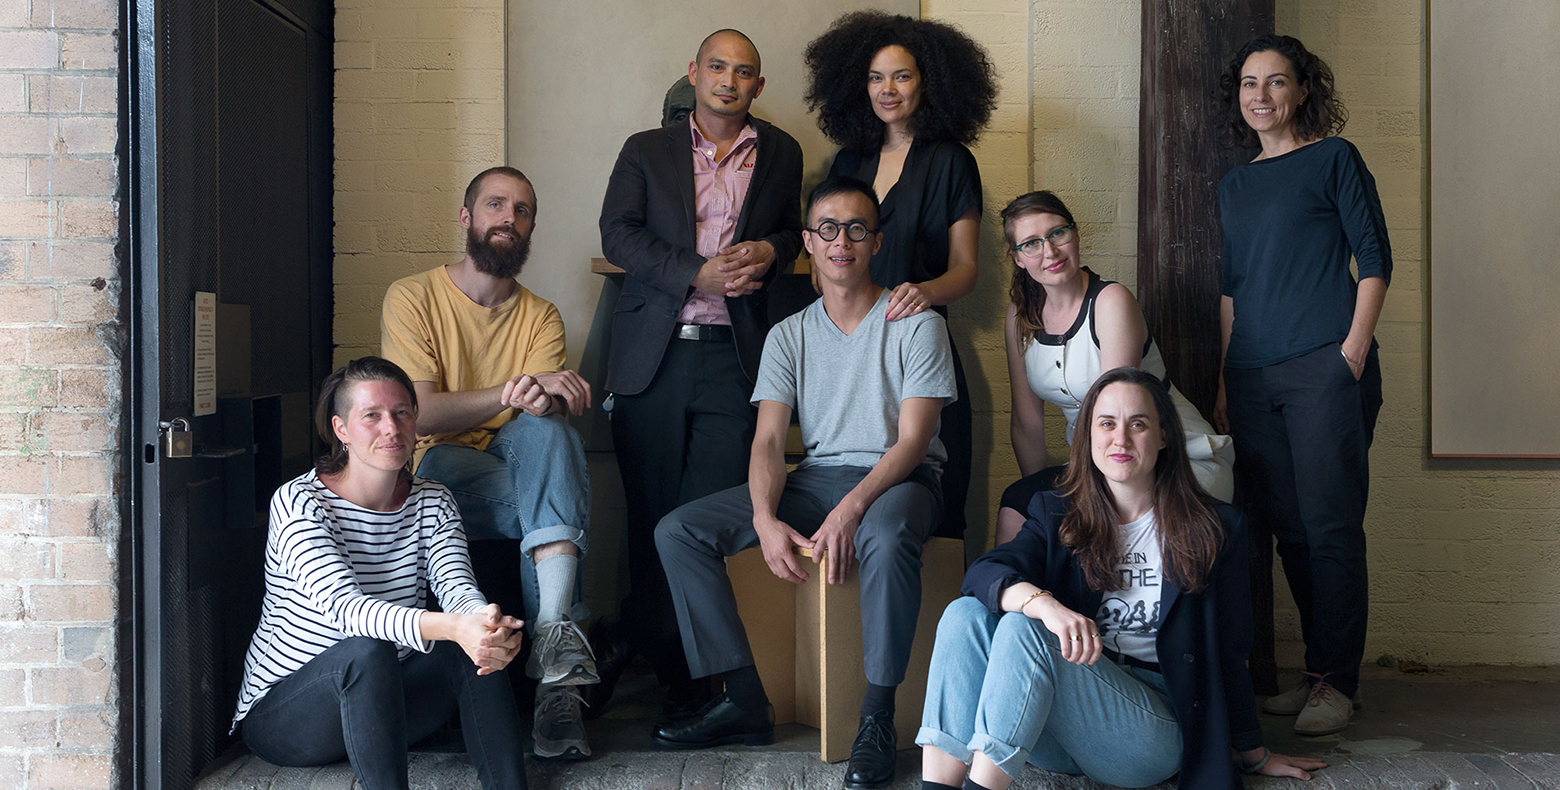 Image: 2016 NSW Visual Arts Fellowship finalists (left to right): Cigdem Aydemir, Tully Arnot, Adri Valery Wens, James Nguyen, Angela Tiatia, Frances Barrett, Giselle Stanborough and Consuelo Cavaniglia. Absent: Tim Bruniges and Julian Day